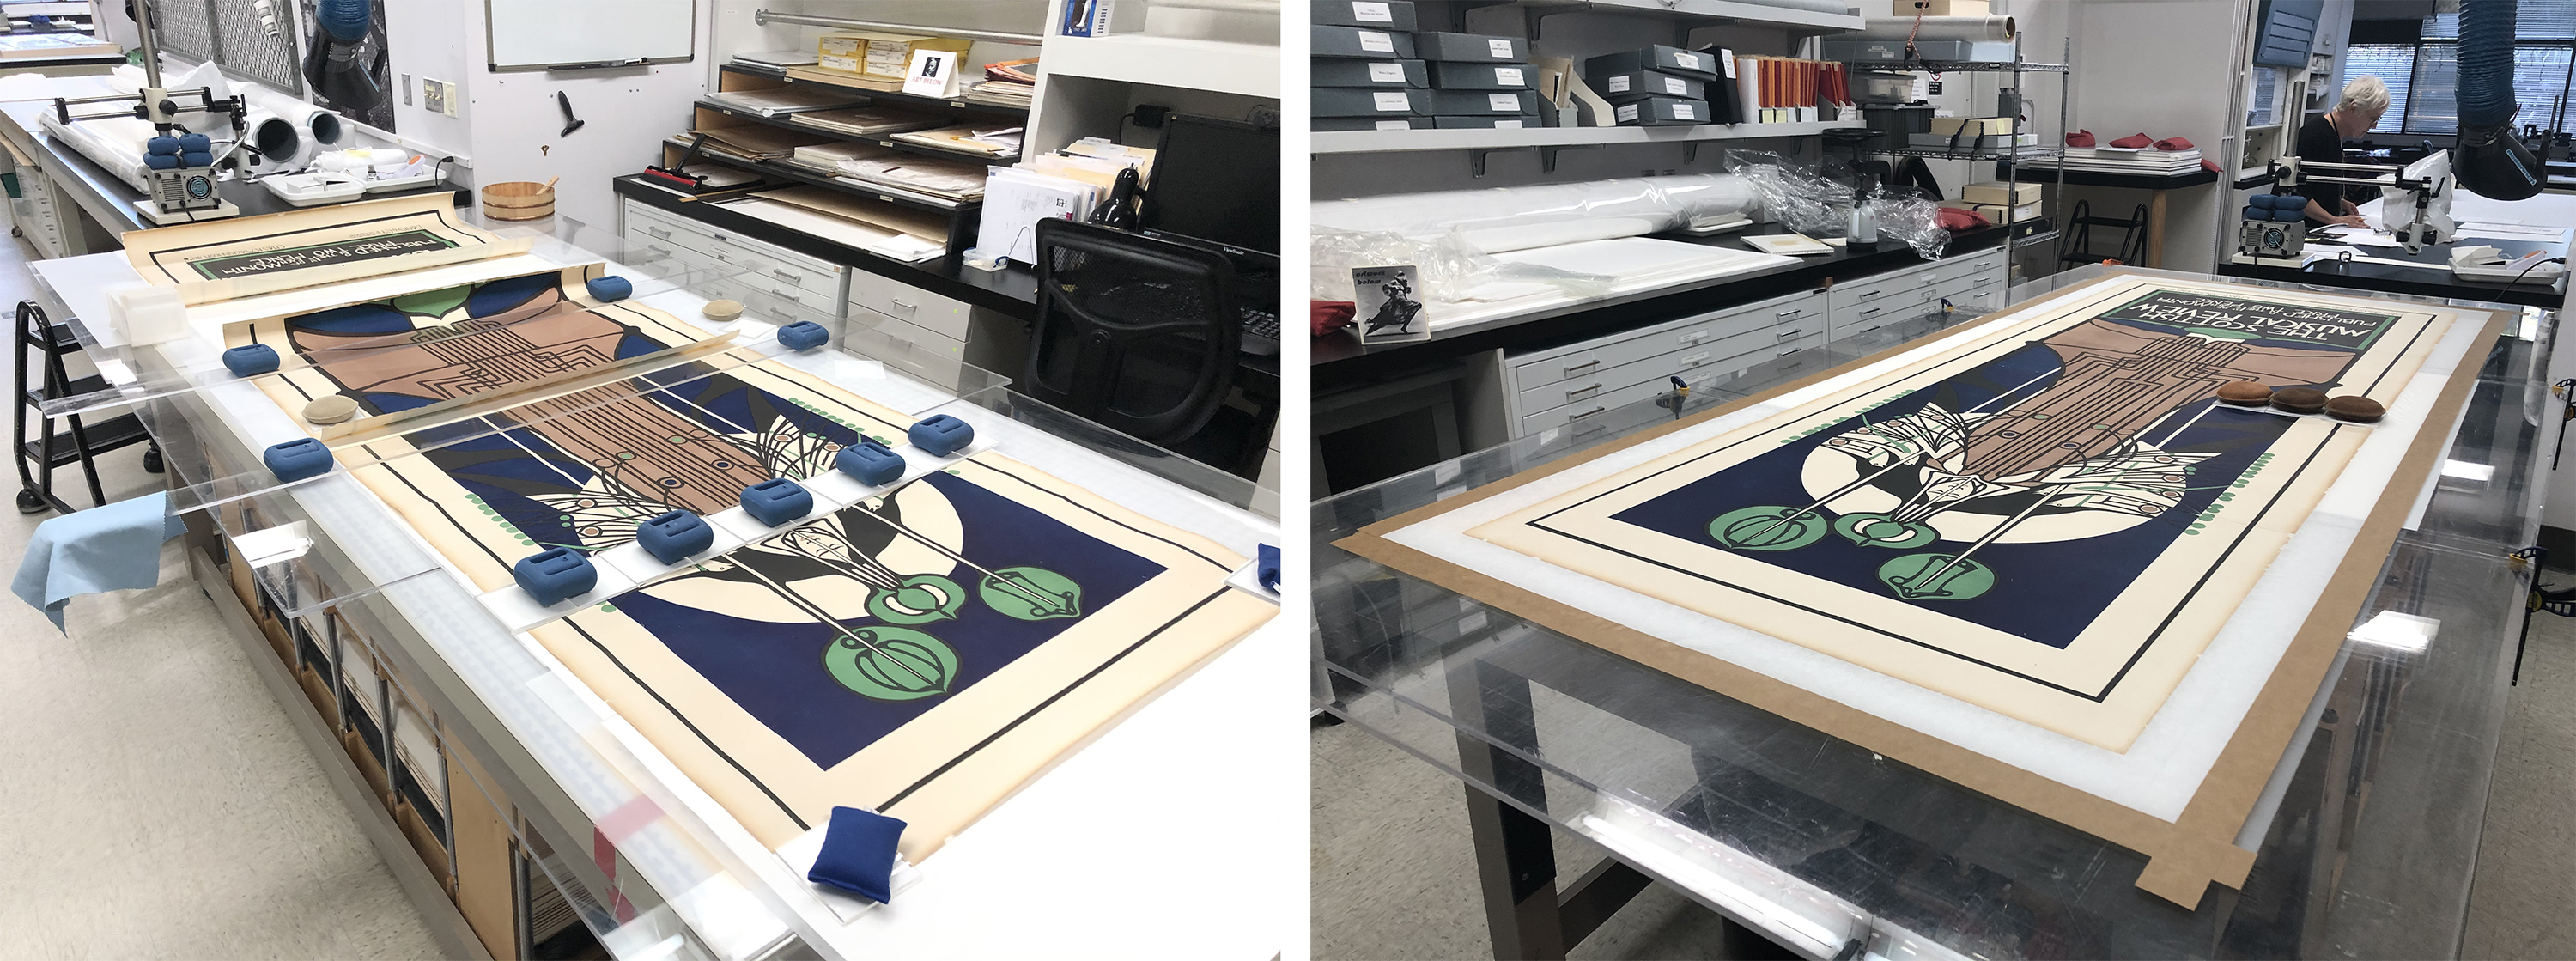 Left: Aligning and reattaching the panels, image courtesy of Madison Brockman; Right: Drying the lined object under tension, image courtesy of Madison Brockman